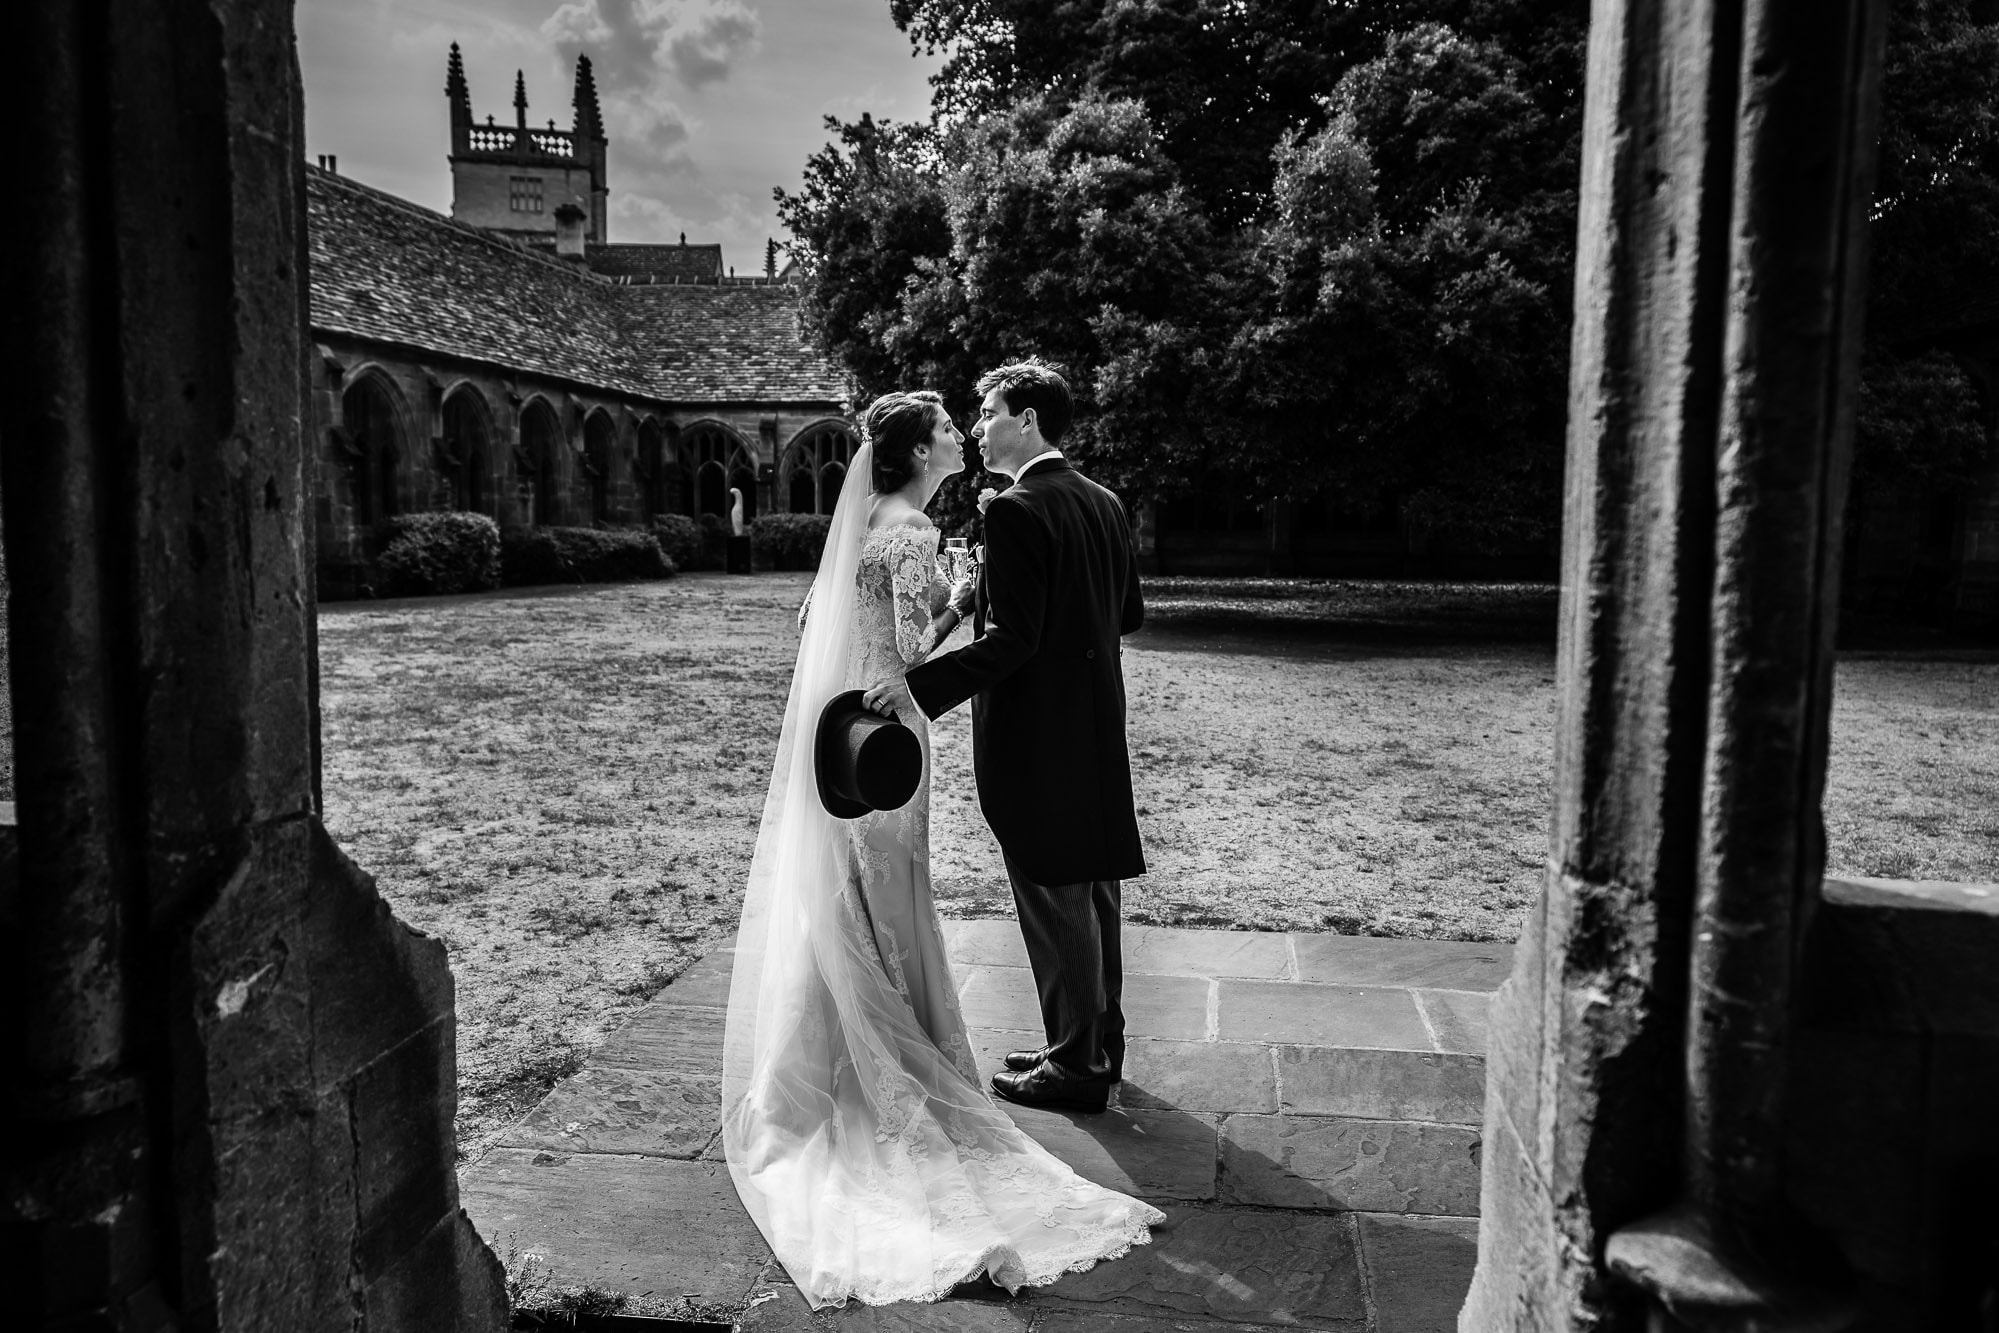 New College Chapel Oxford Wedding Photography - Private Kiss in the grounds of New College Oxford